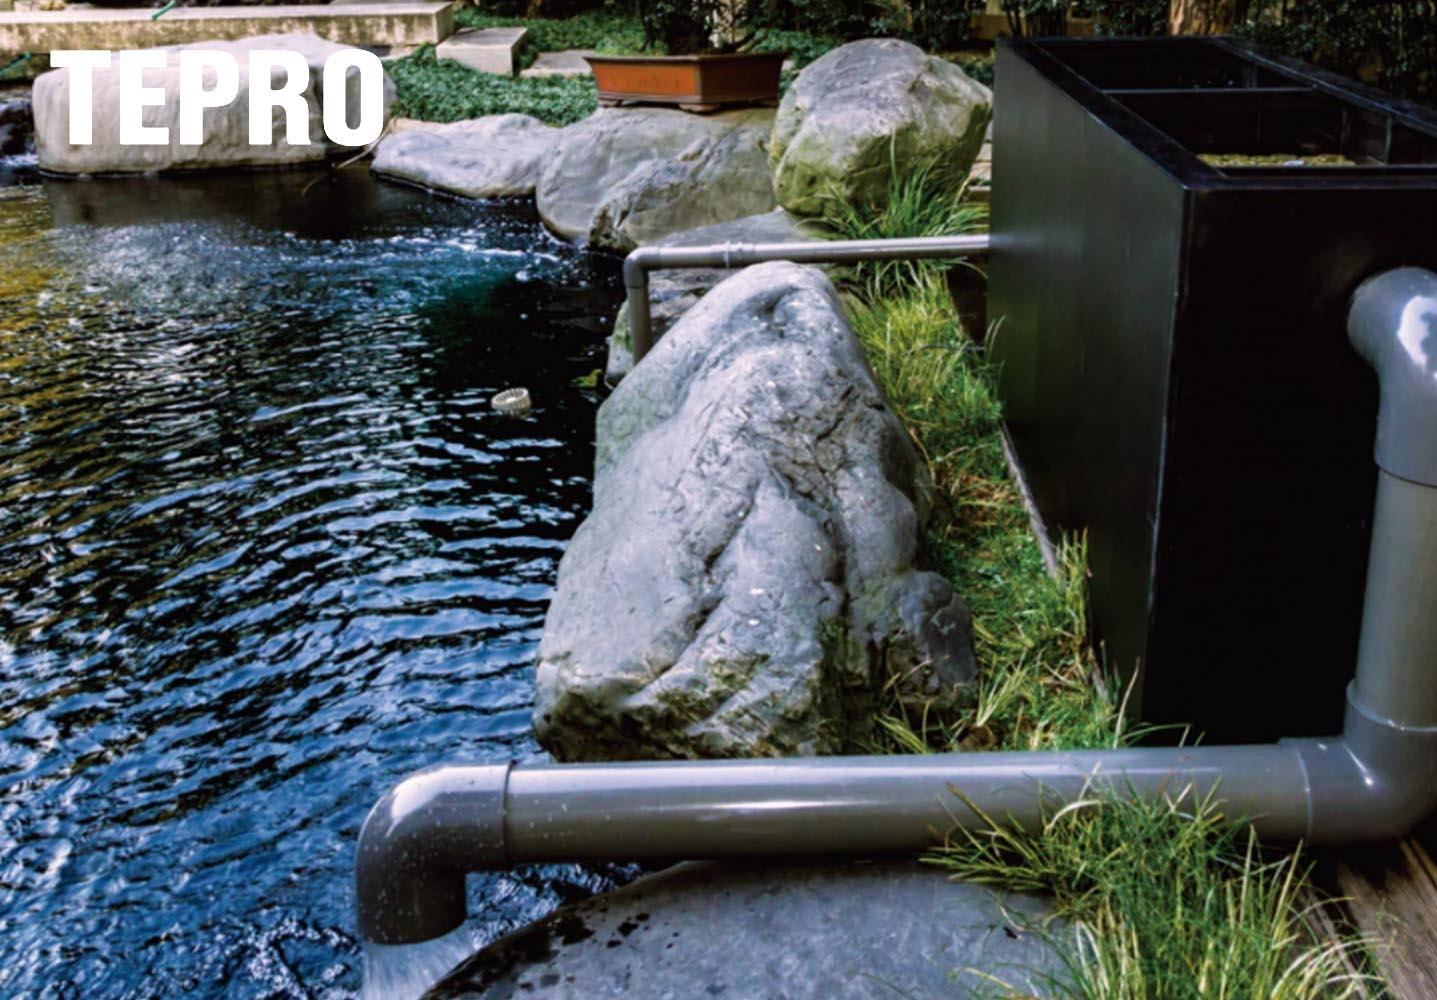 Tepro bio filter system performance for pools-1